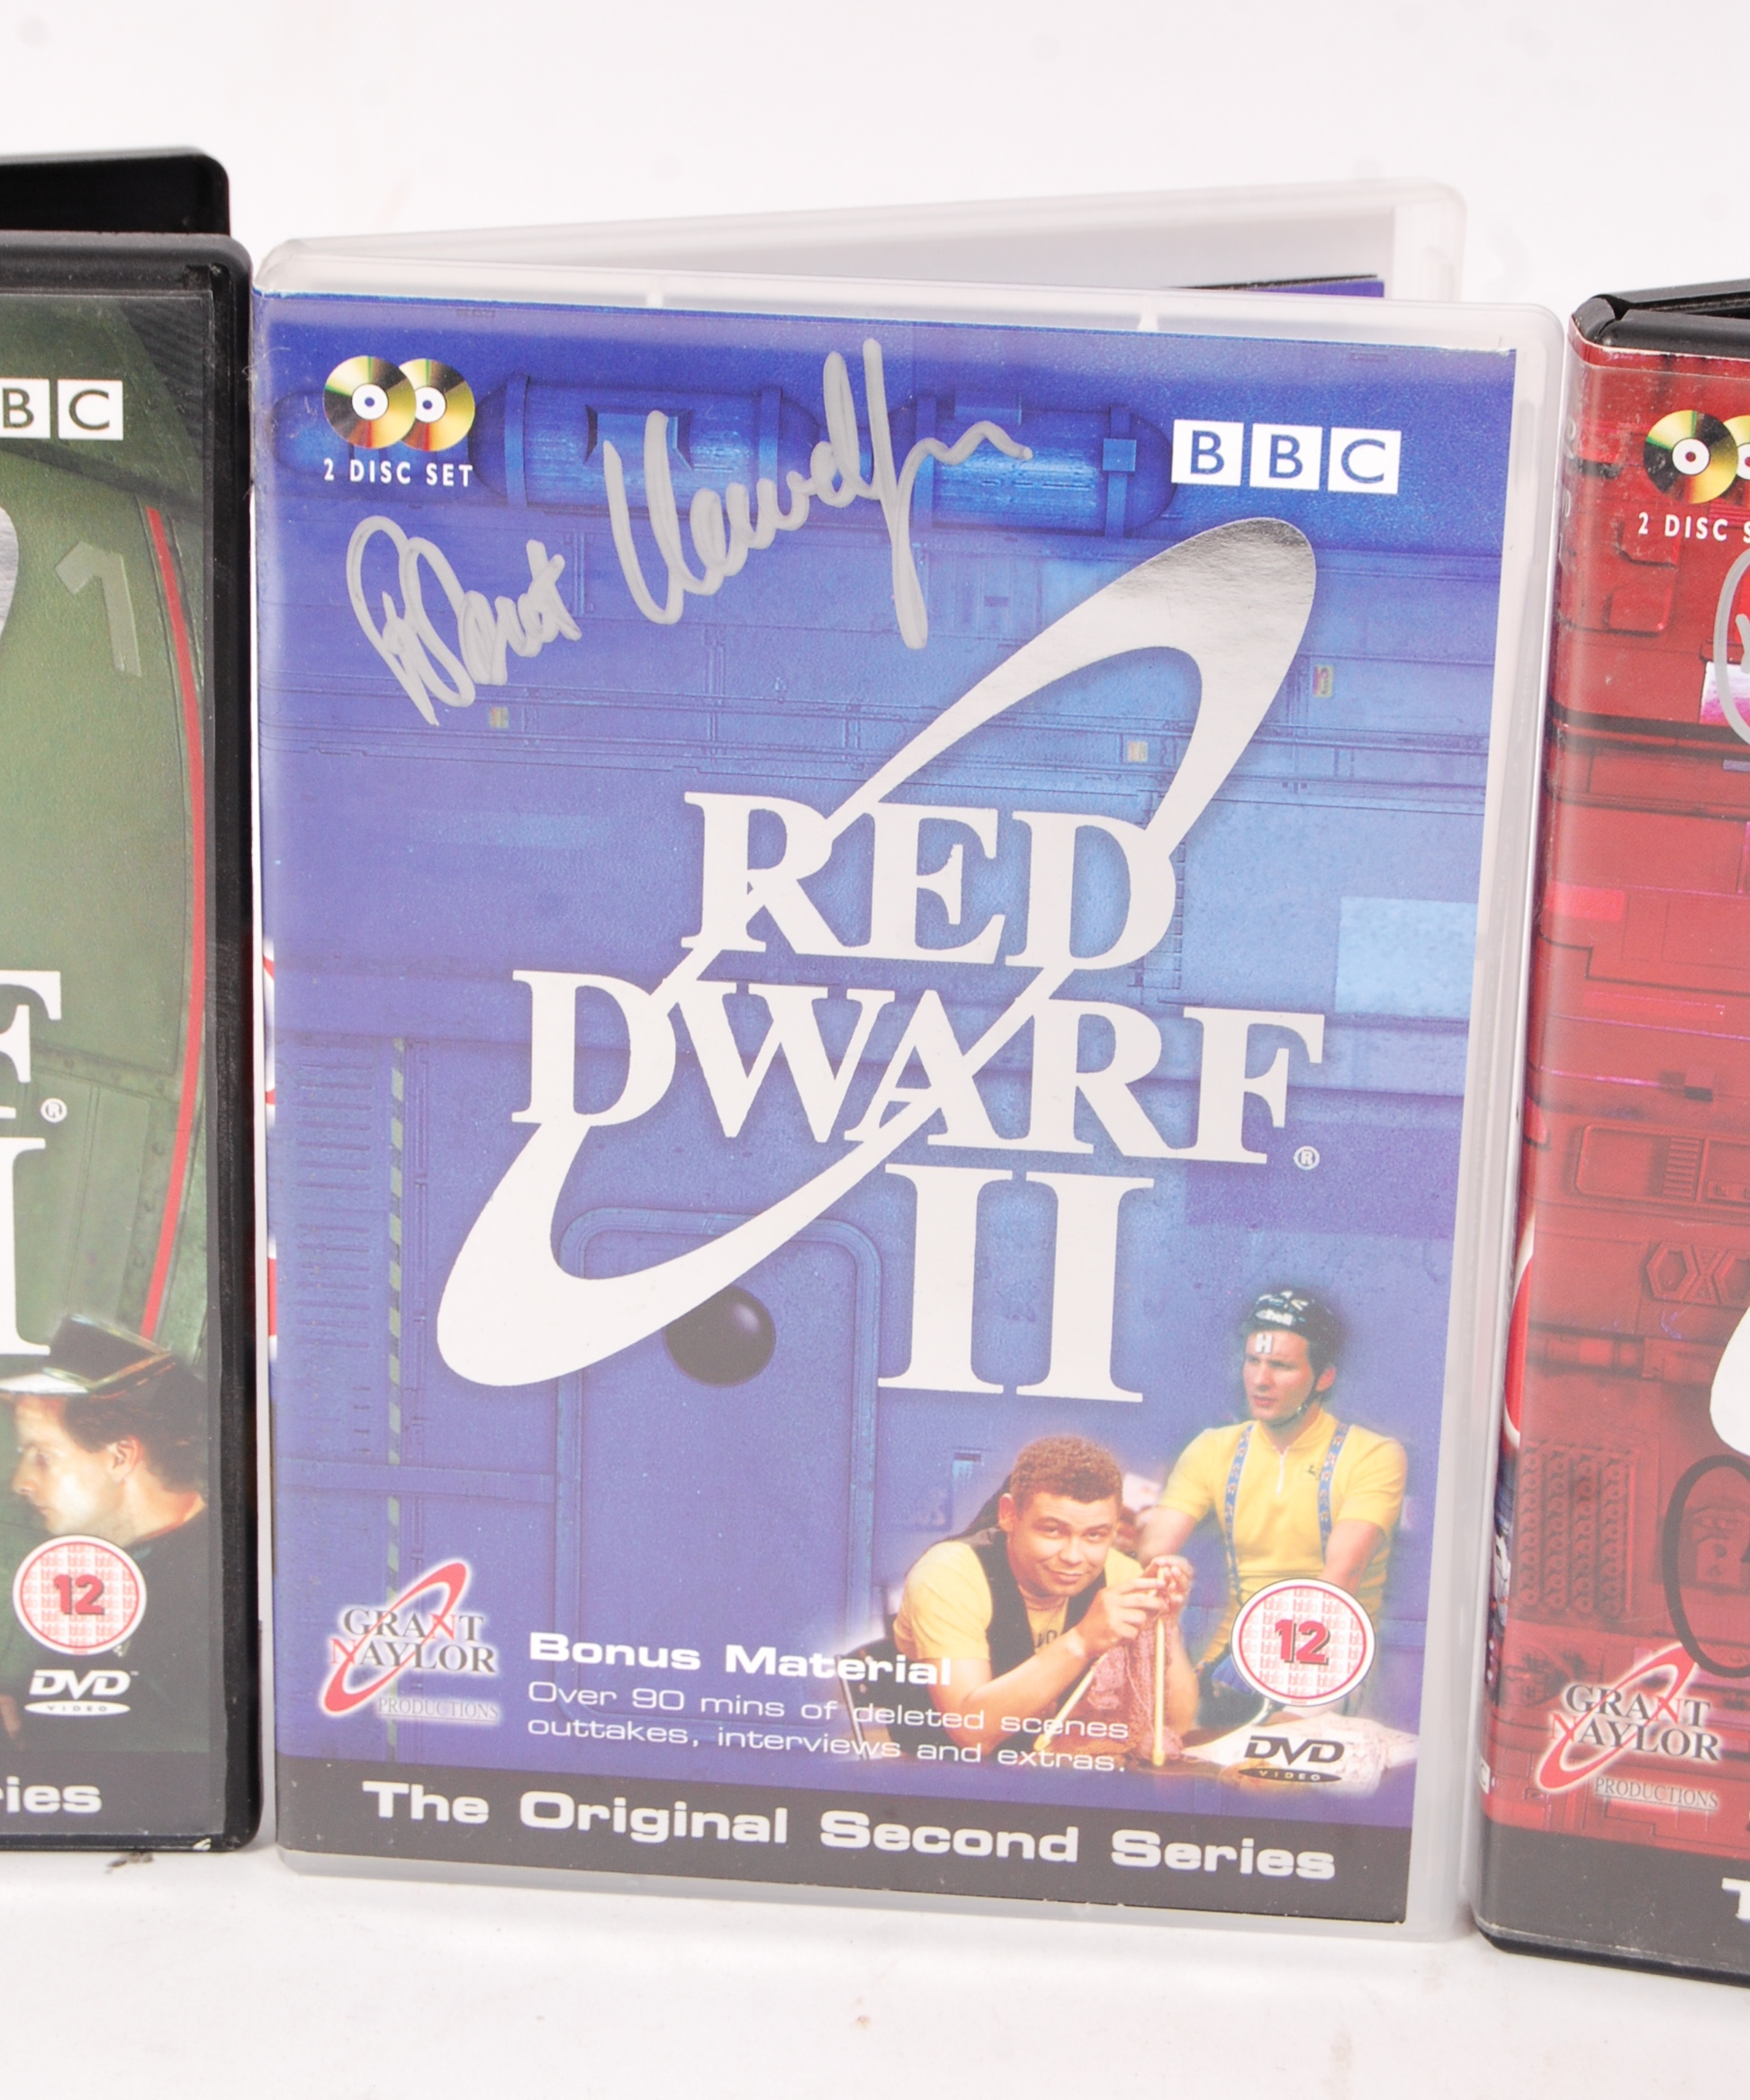 RED DWARF SERIES 1-4 AUTOGRAPHED DVD COLLECTION - Image 3 of 5